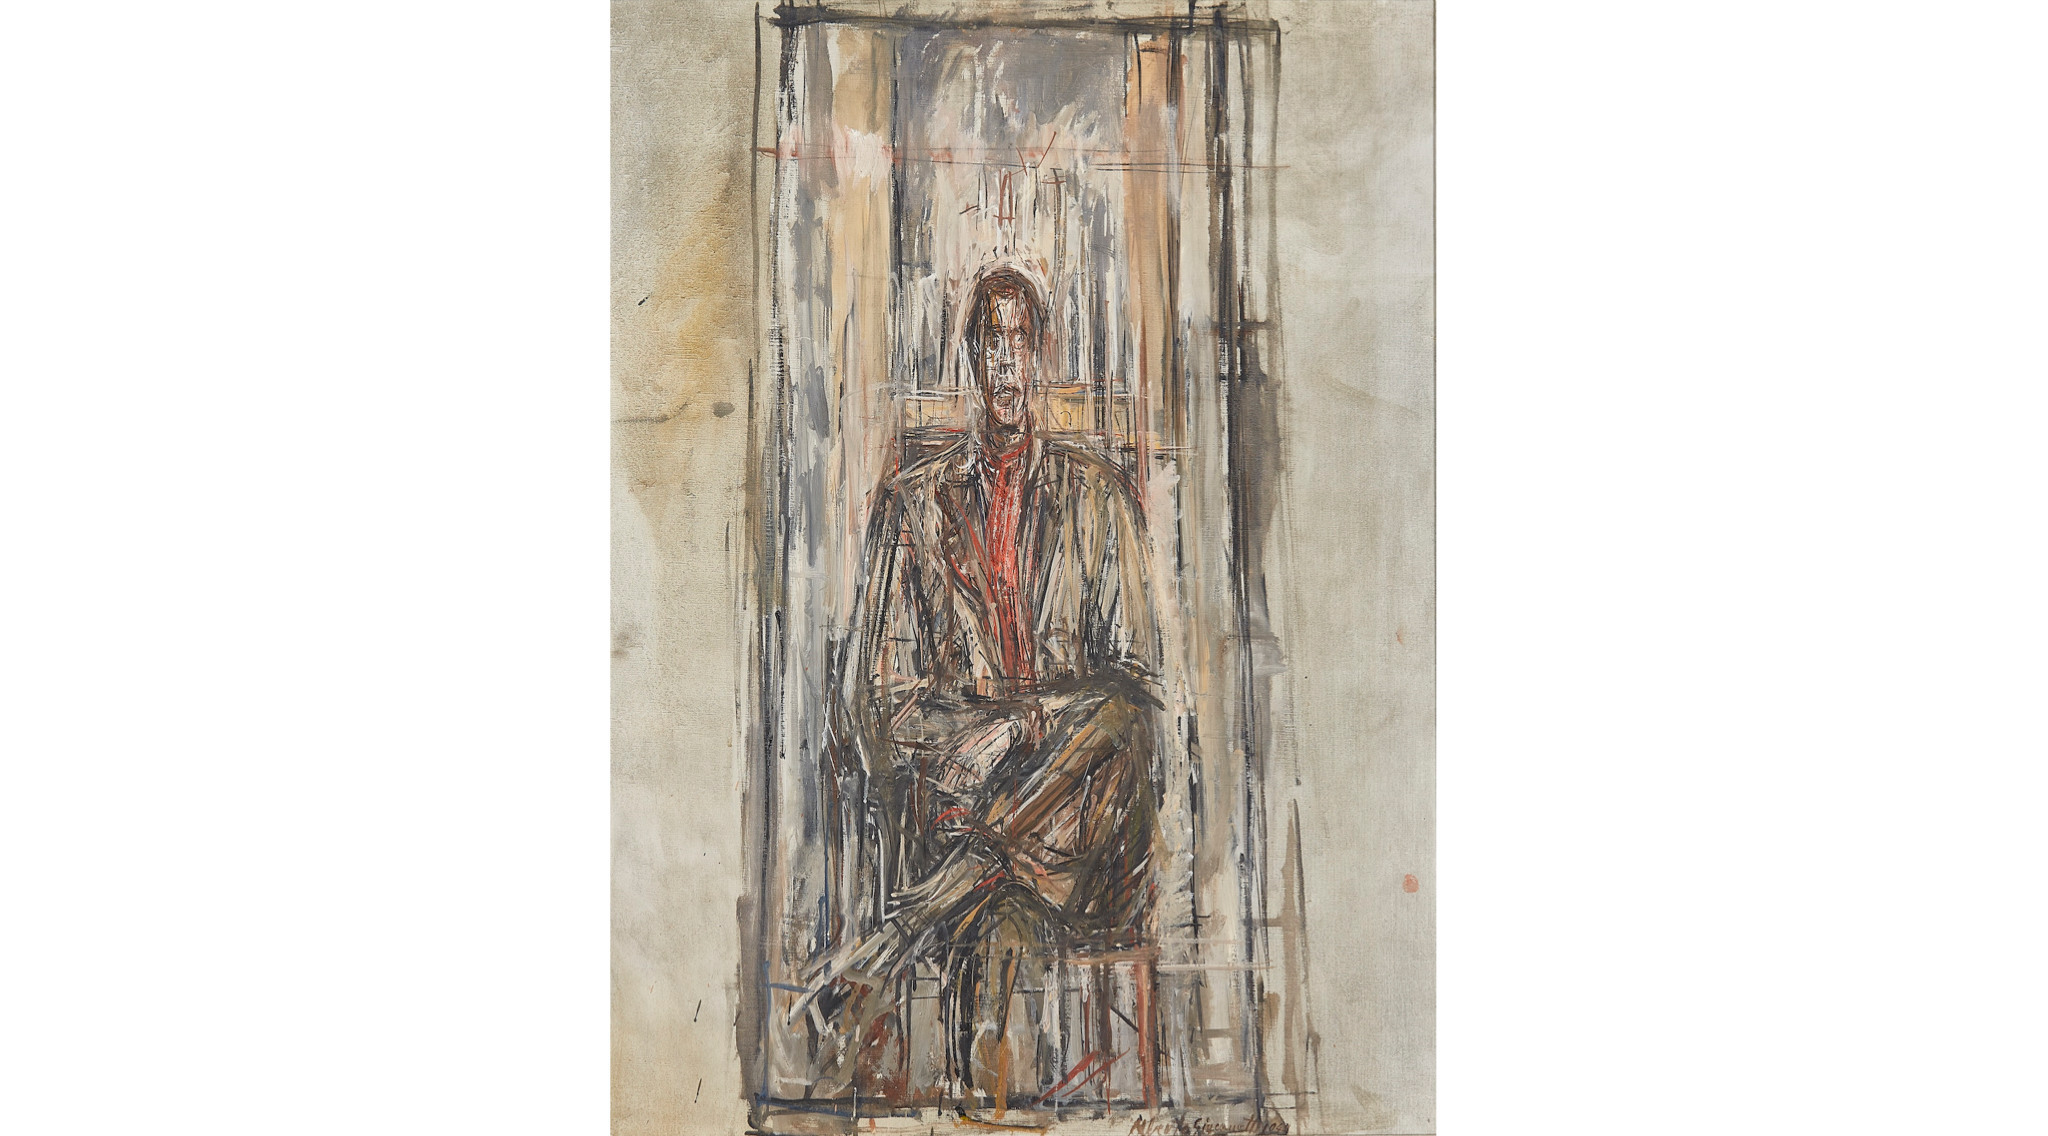 'Diego Seated', 1948 by Alberto Giacometti